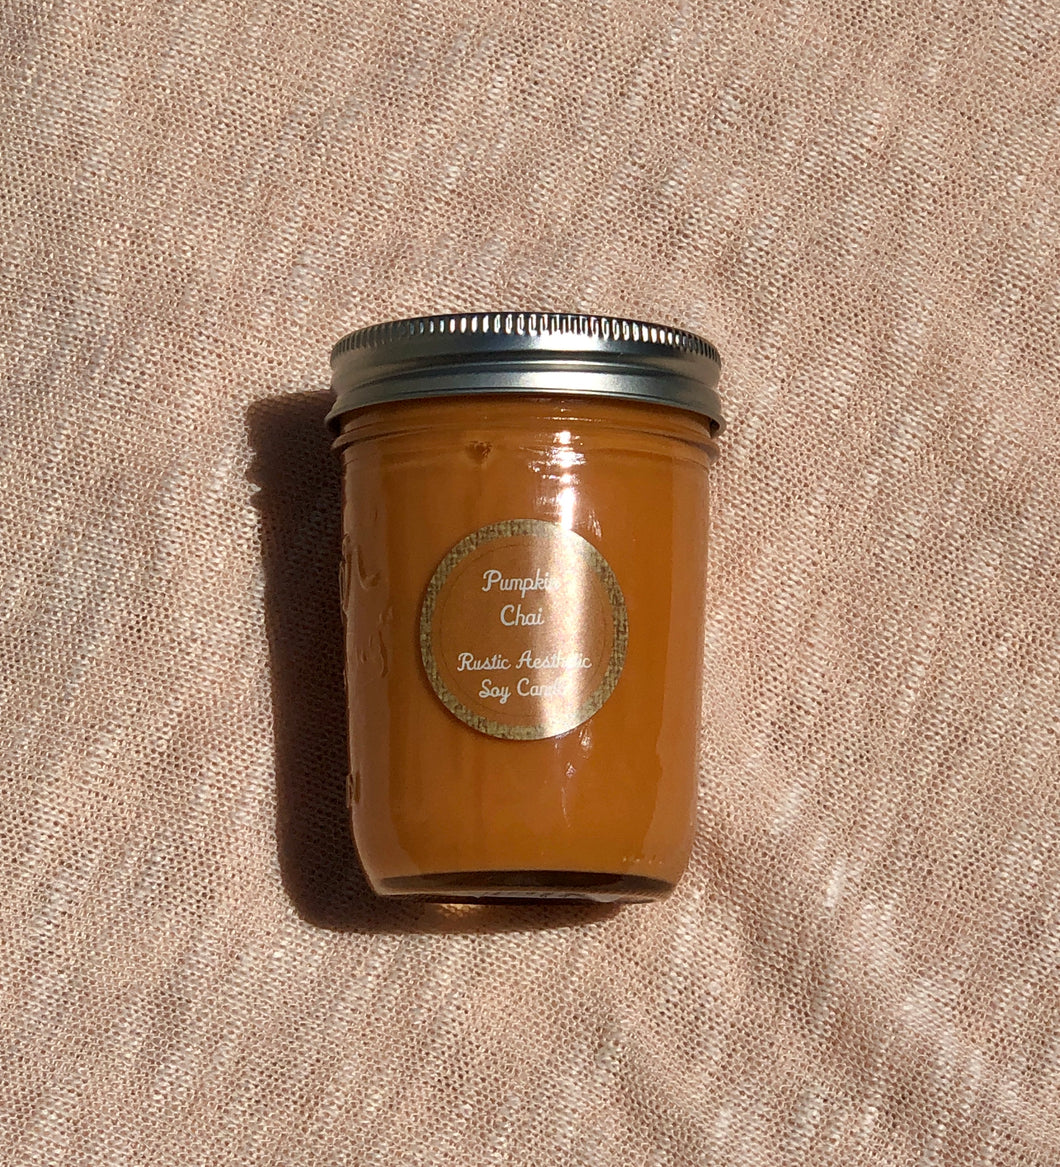 Pumpkin Chai Soy Candle in an Iconic Mason Jar